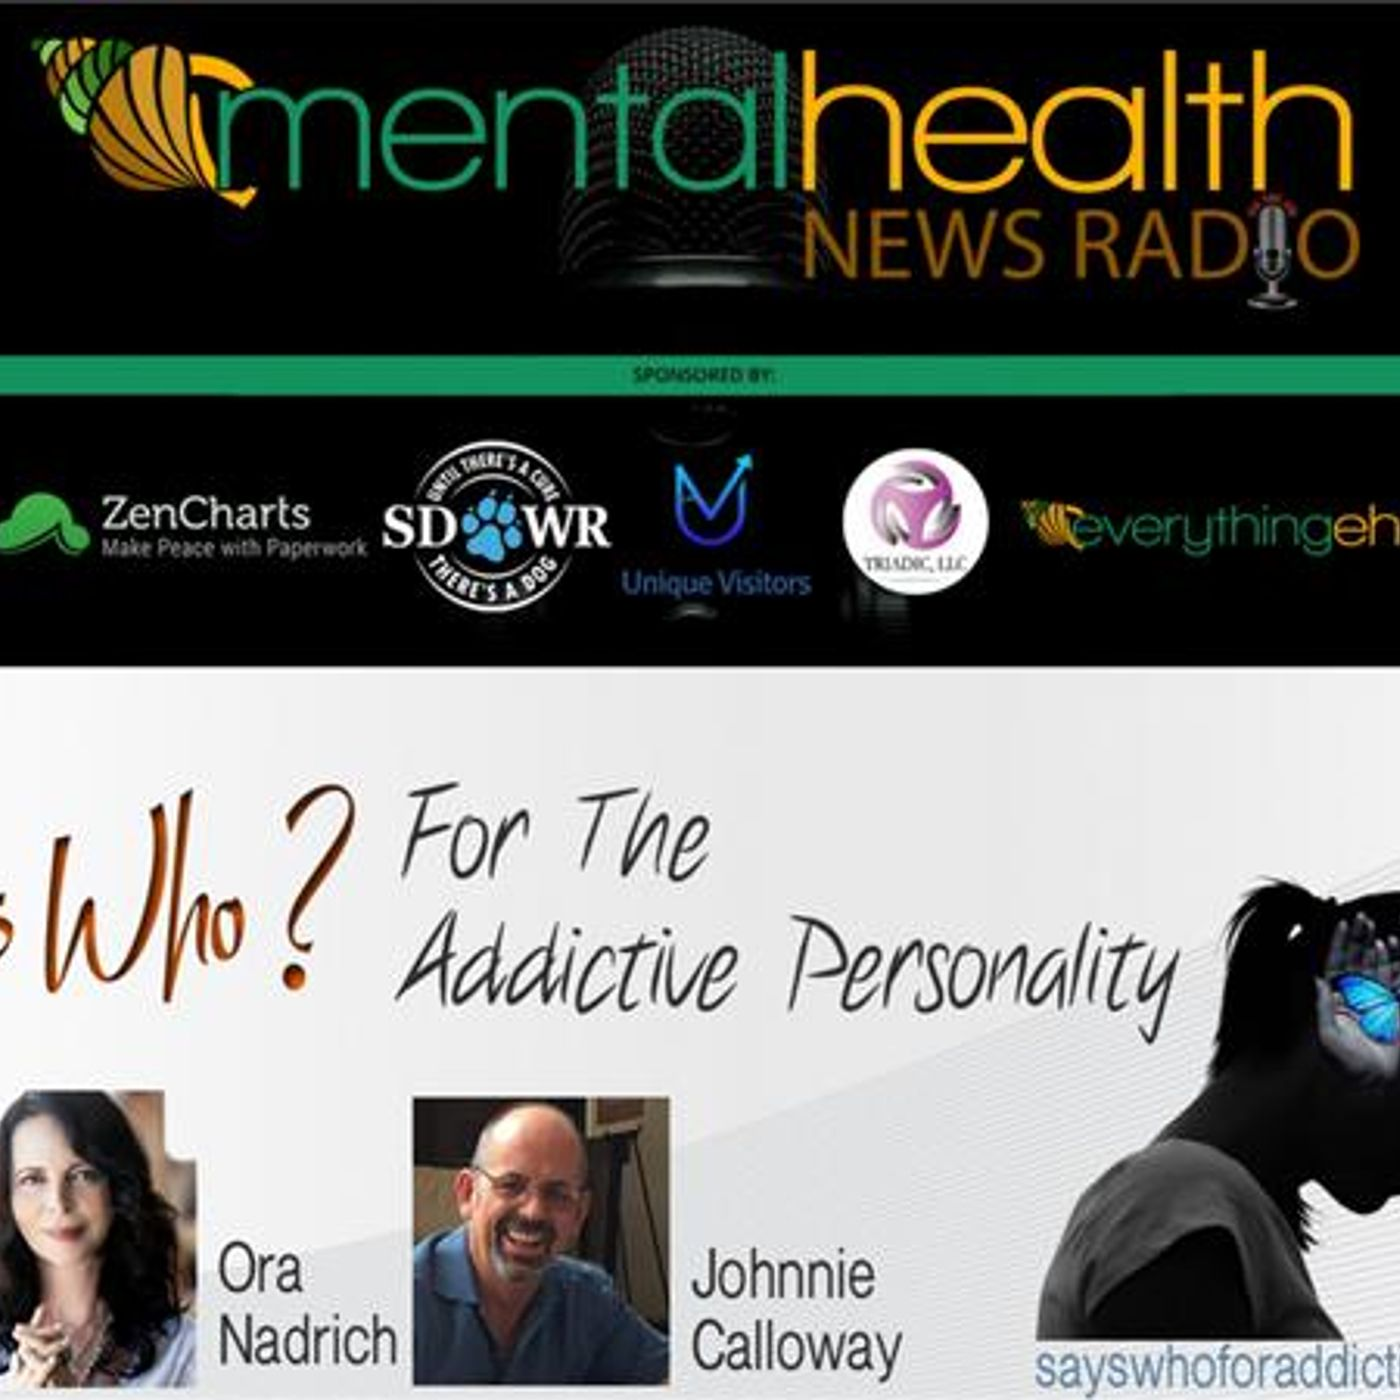 Mental Health News Radio - The Addiction Mental Health Connection with Ora Nadrich and Johnnie Calloway